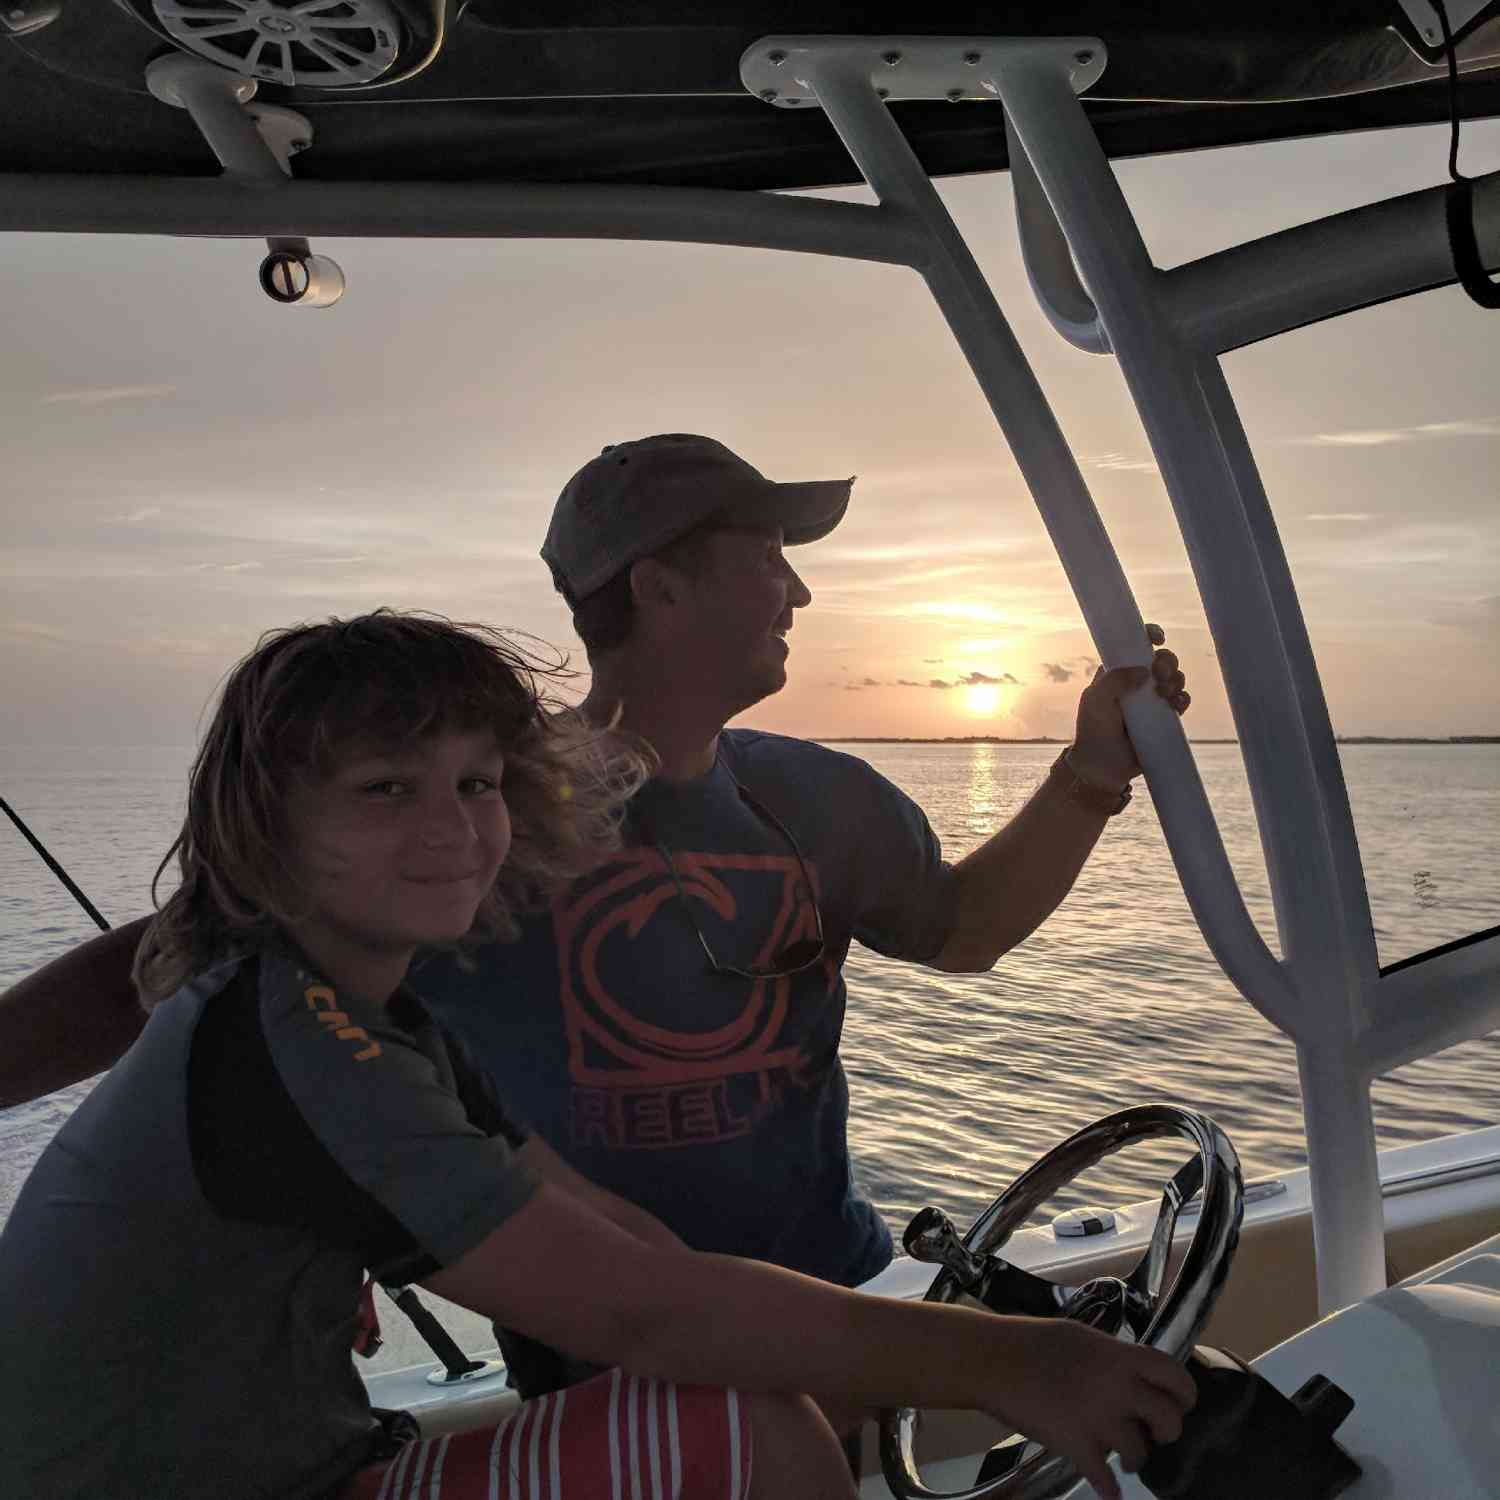 Title: Sunset Cruise - On board their Sportsman Open 252 Center Console - Location: Key West. Participating in the Photo Contest #SportsmanJuly2018